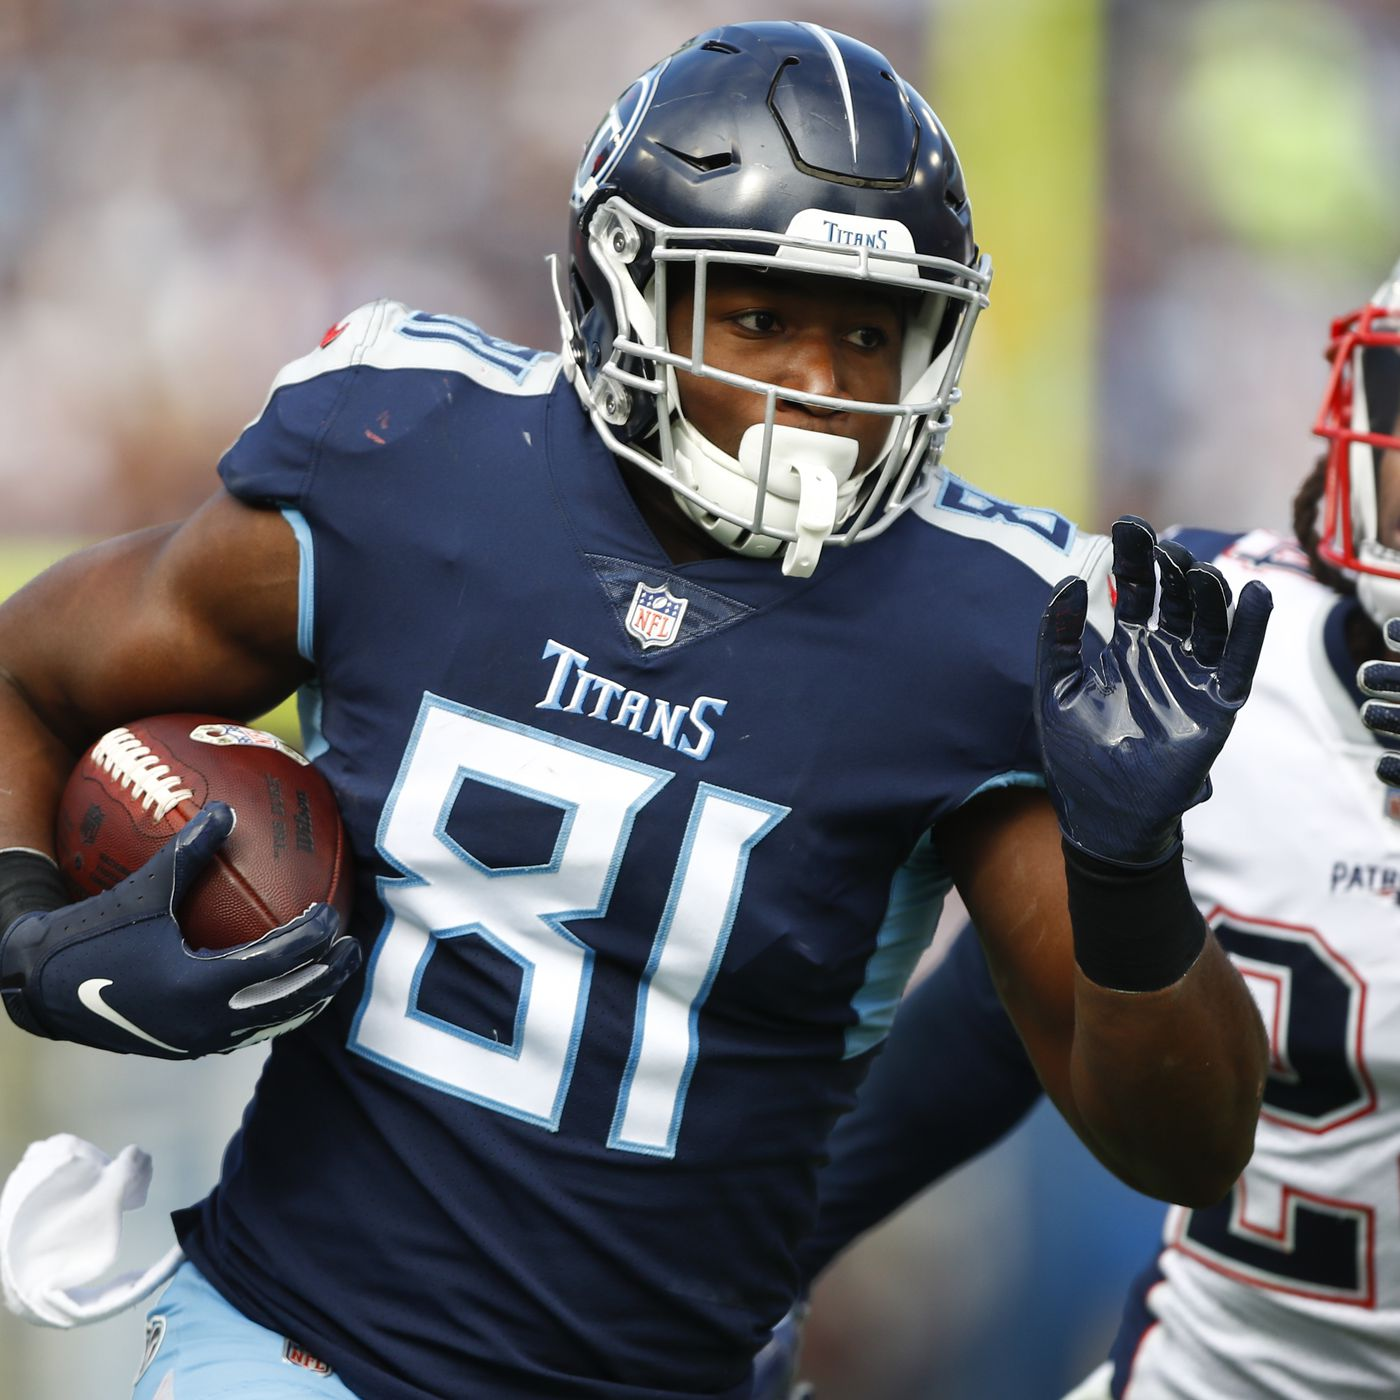 info for 7ab49 b4a55 Titans move Jonnu Smith and Jack Conklin to IR; add TE Cole ...